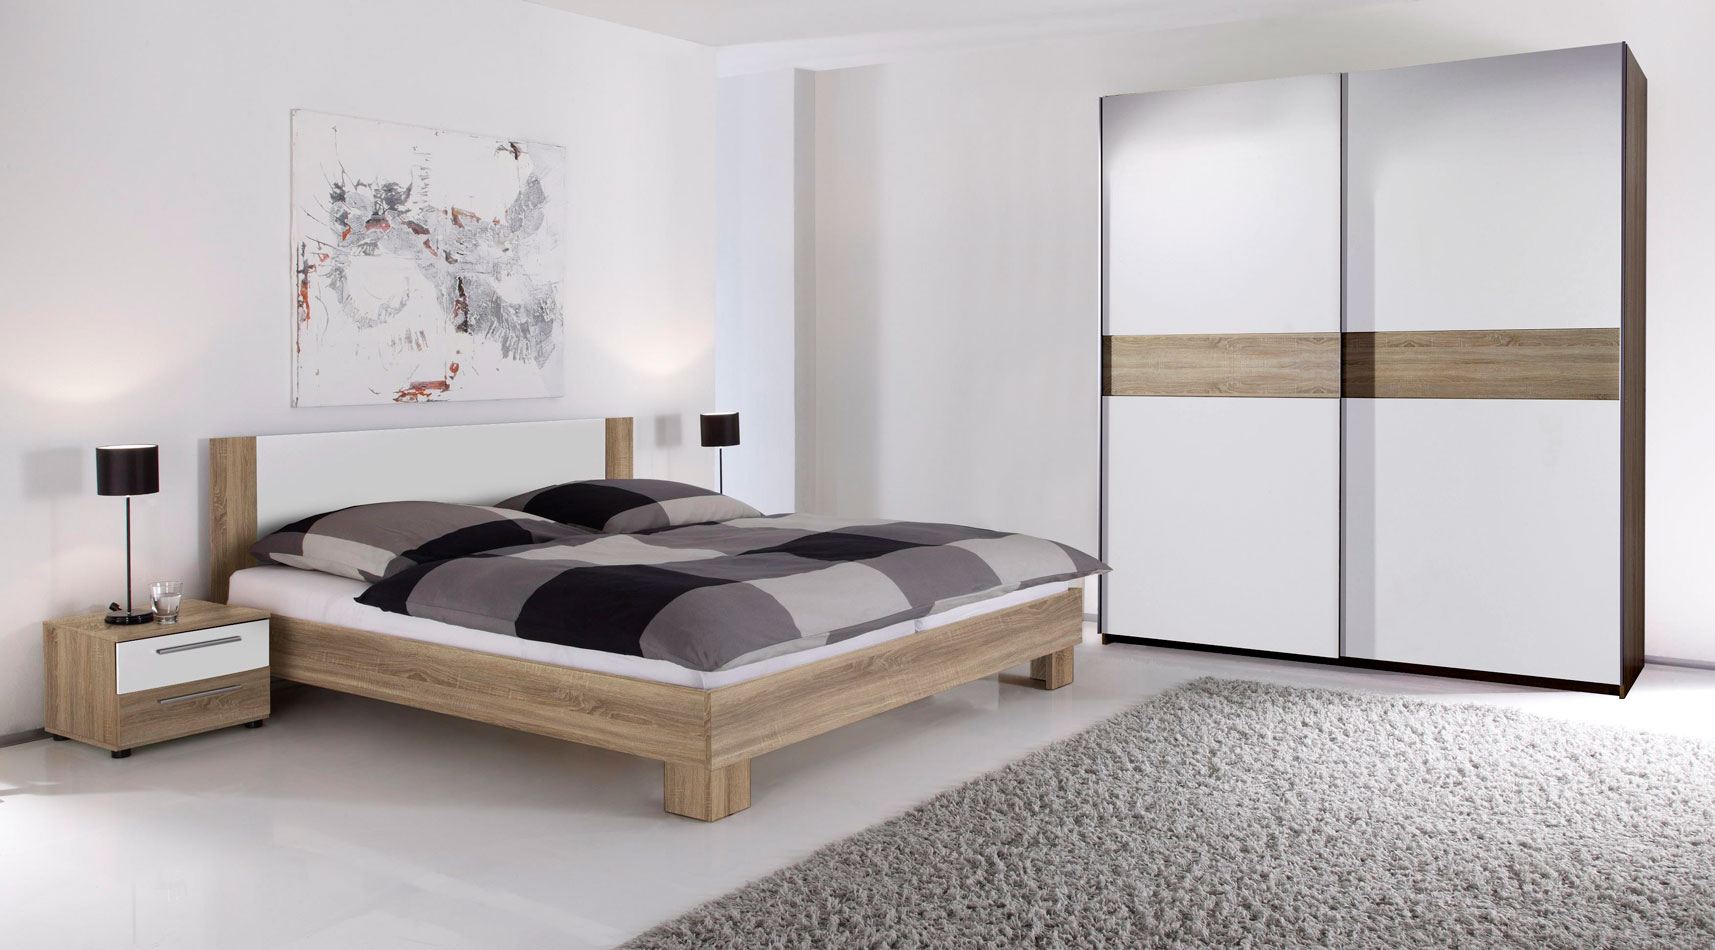 vanti komplett schlafzimmer 4 teilig wei eiche sonoma dekor. Black Bedroom Furniture Sets. Home Design Ideas